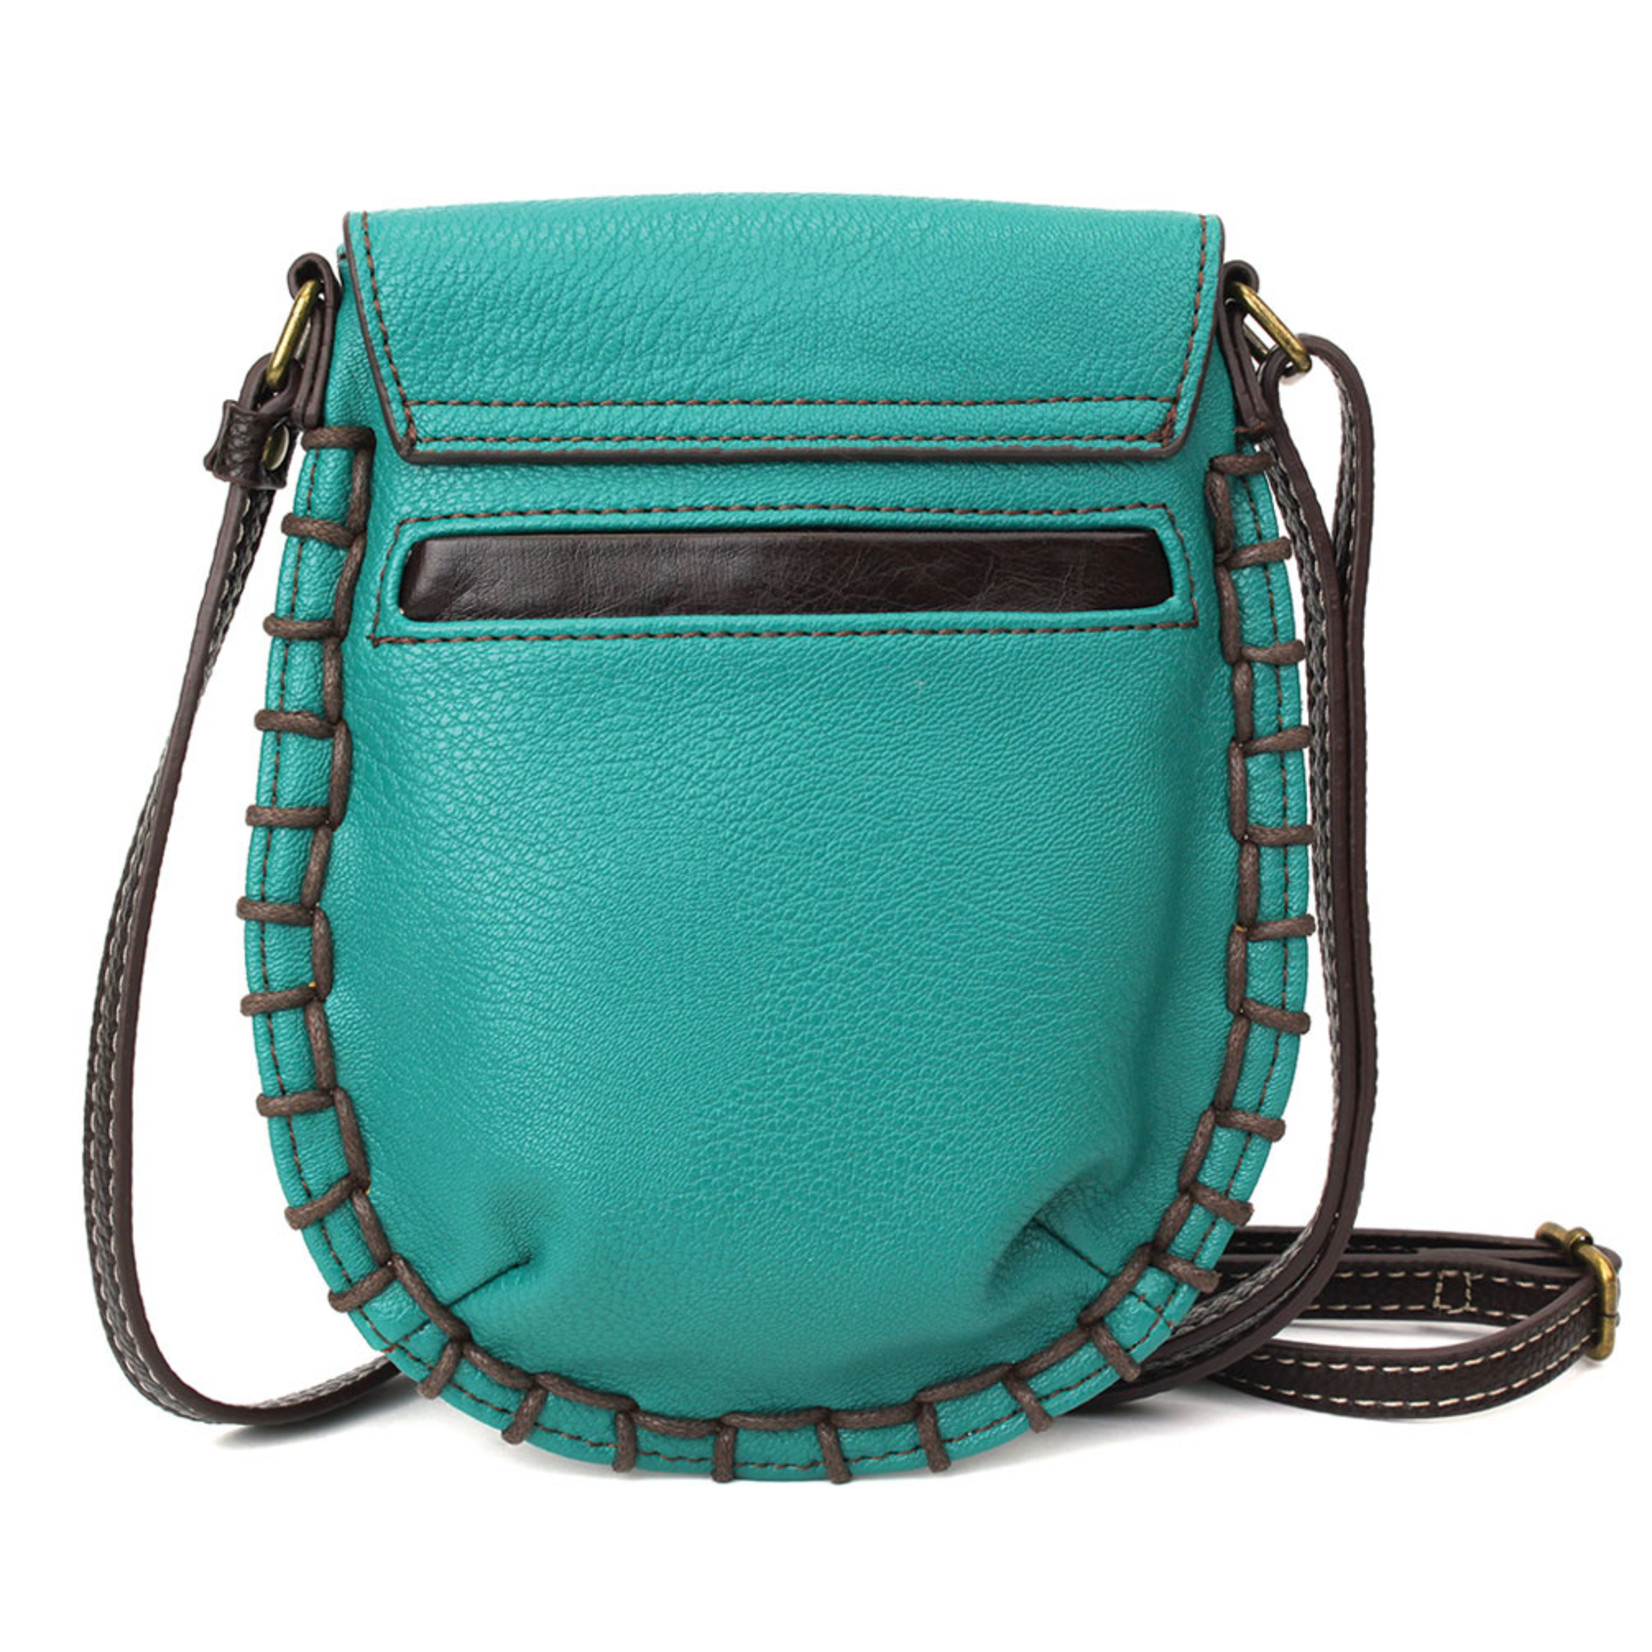 Chala Charming Cell Phone Crossbody Turquoise